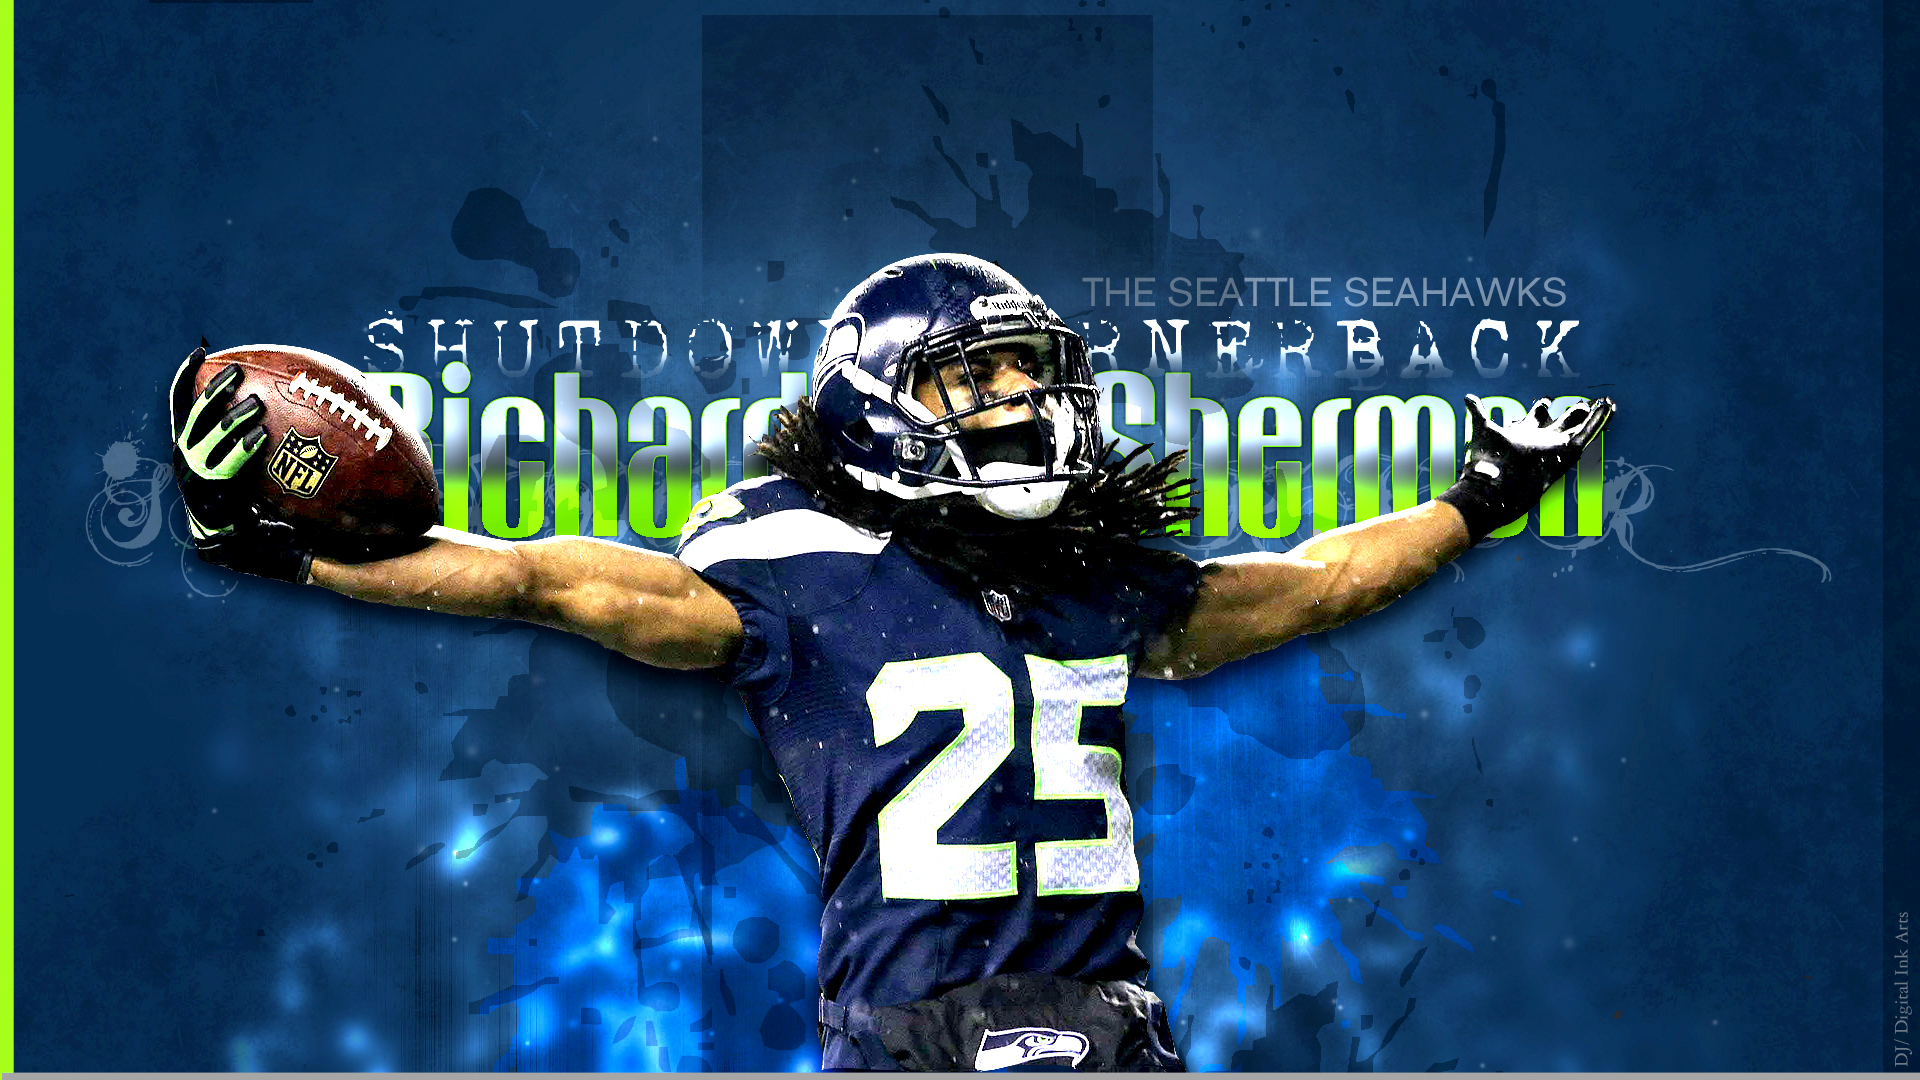 Seahawks pics Image Seahawks Pictures Wallpaper 1920x1080